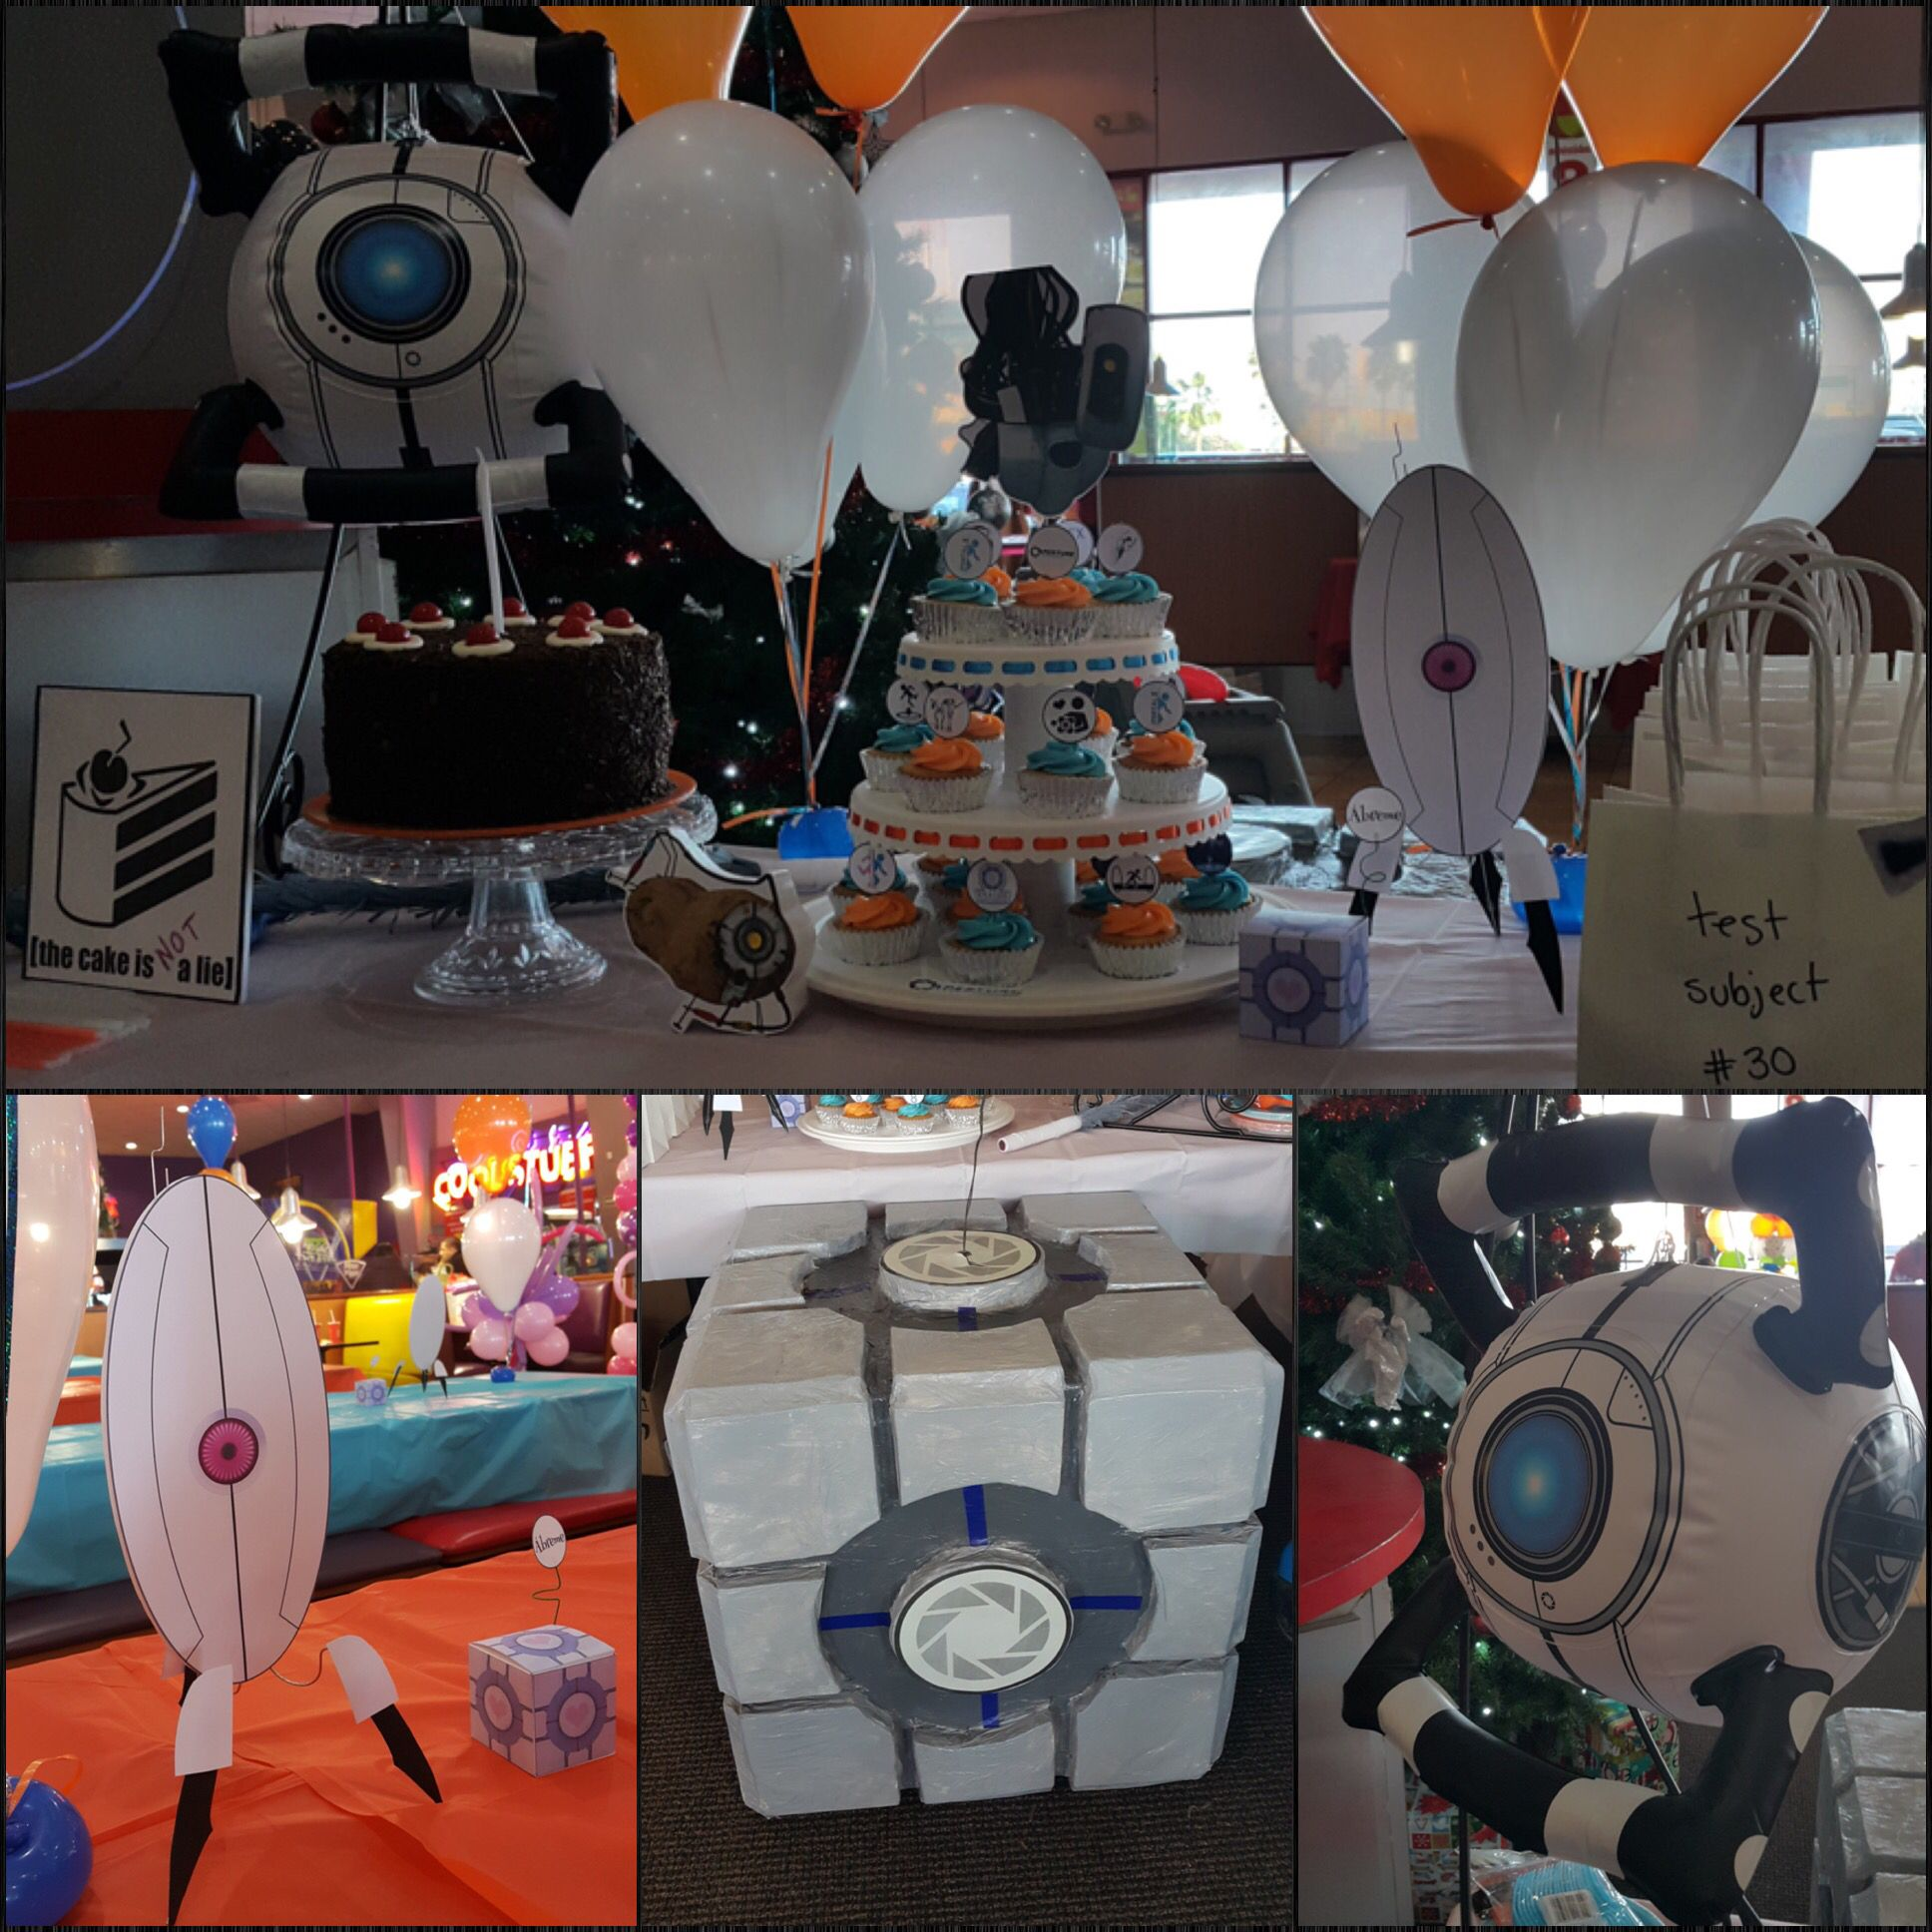 Portal 2 Party 2nd Birthday Parties Birthday Party Themes Video Game Room Decor